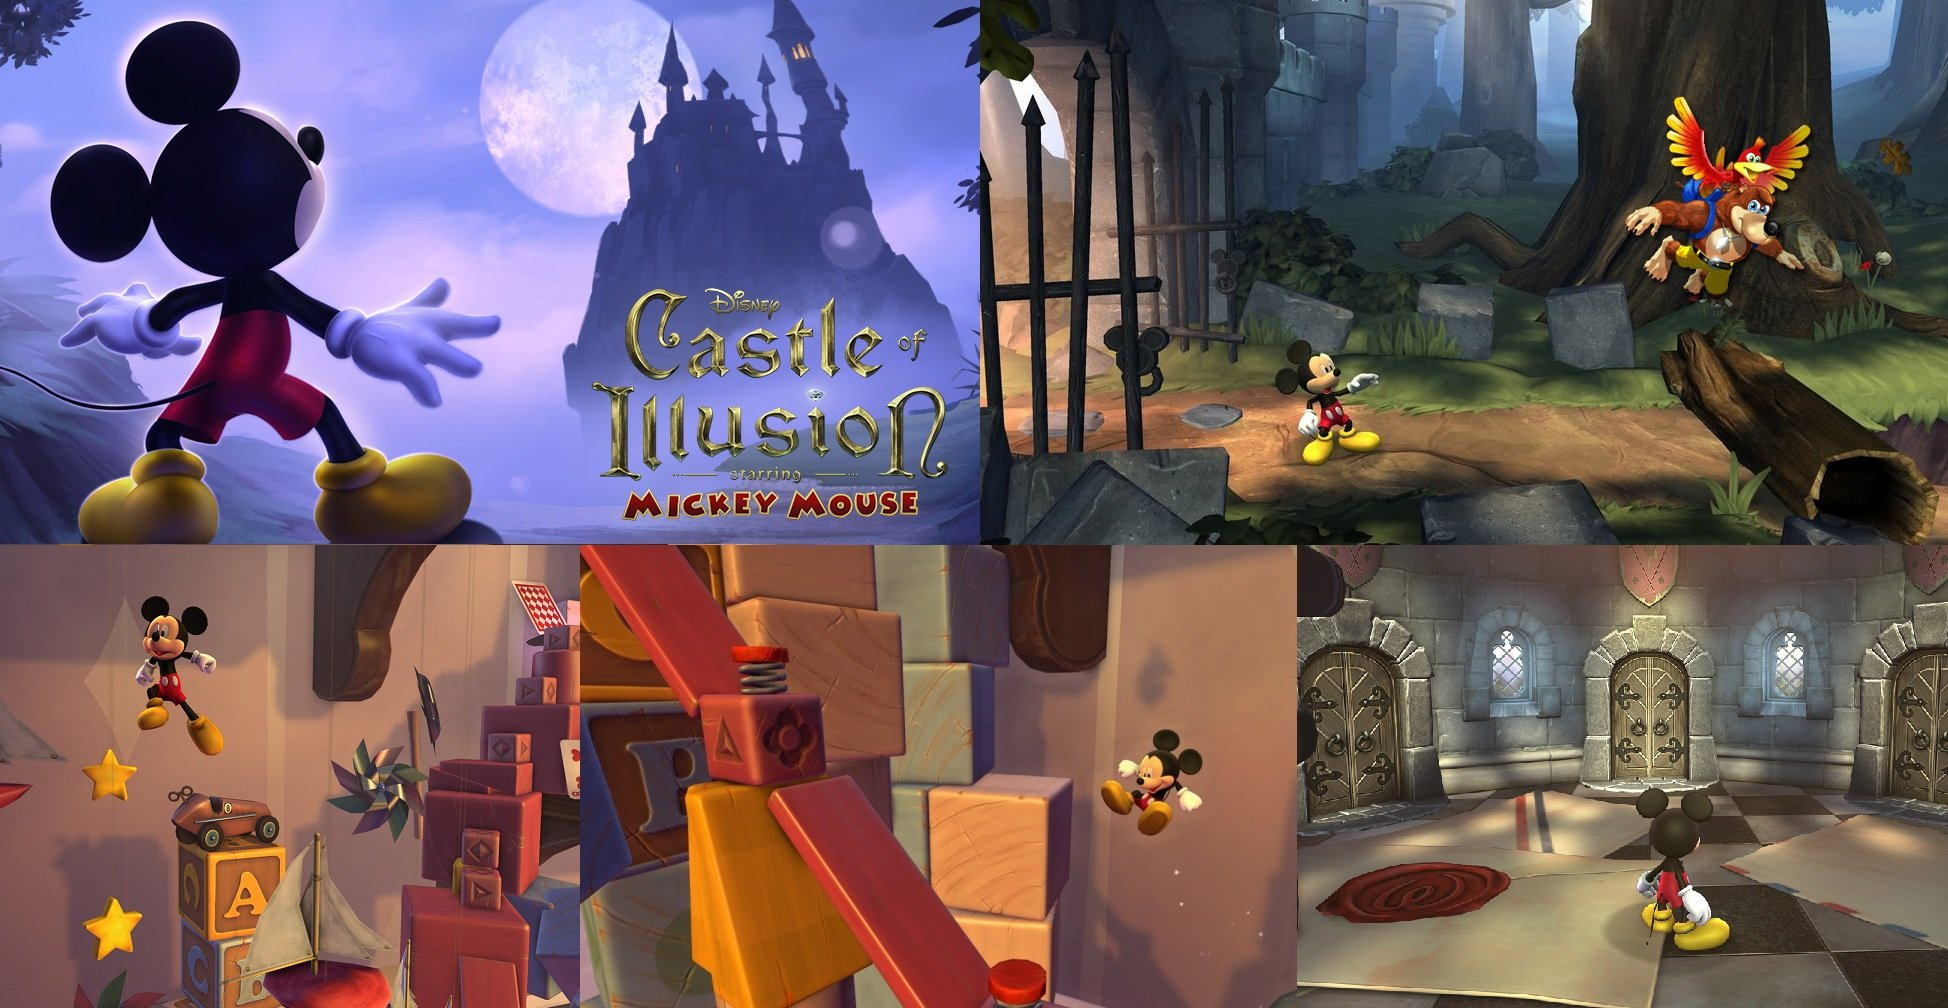 Объявлена дата выхода ремейка Castle of Illusion Starring Mickey Mouse.  Castle of Illusion Starring Mickey Mouse  - ... - Изображение 2